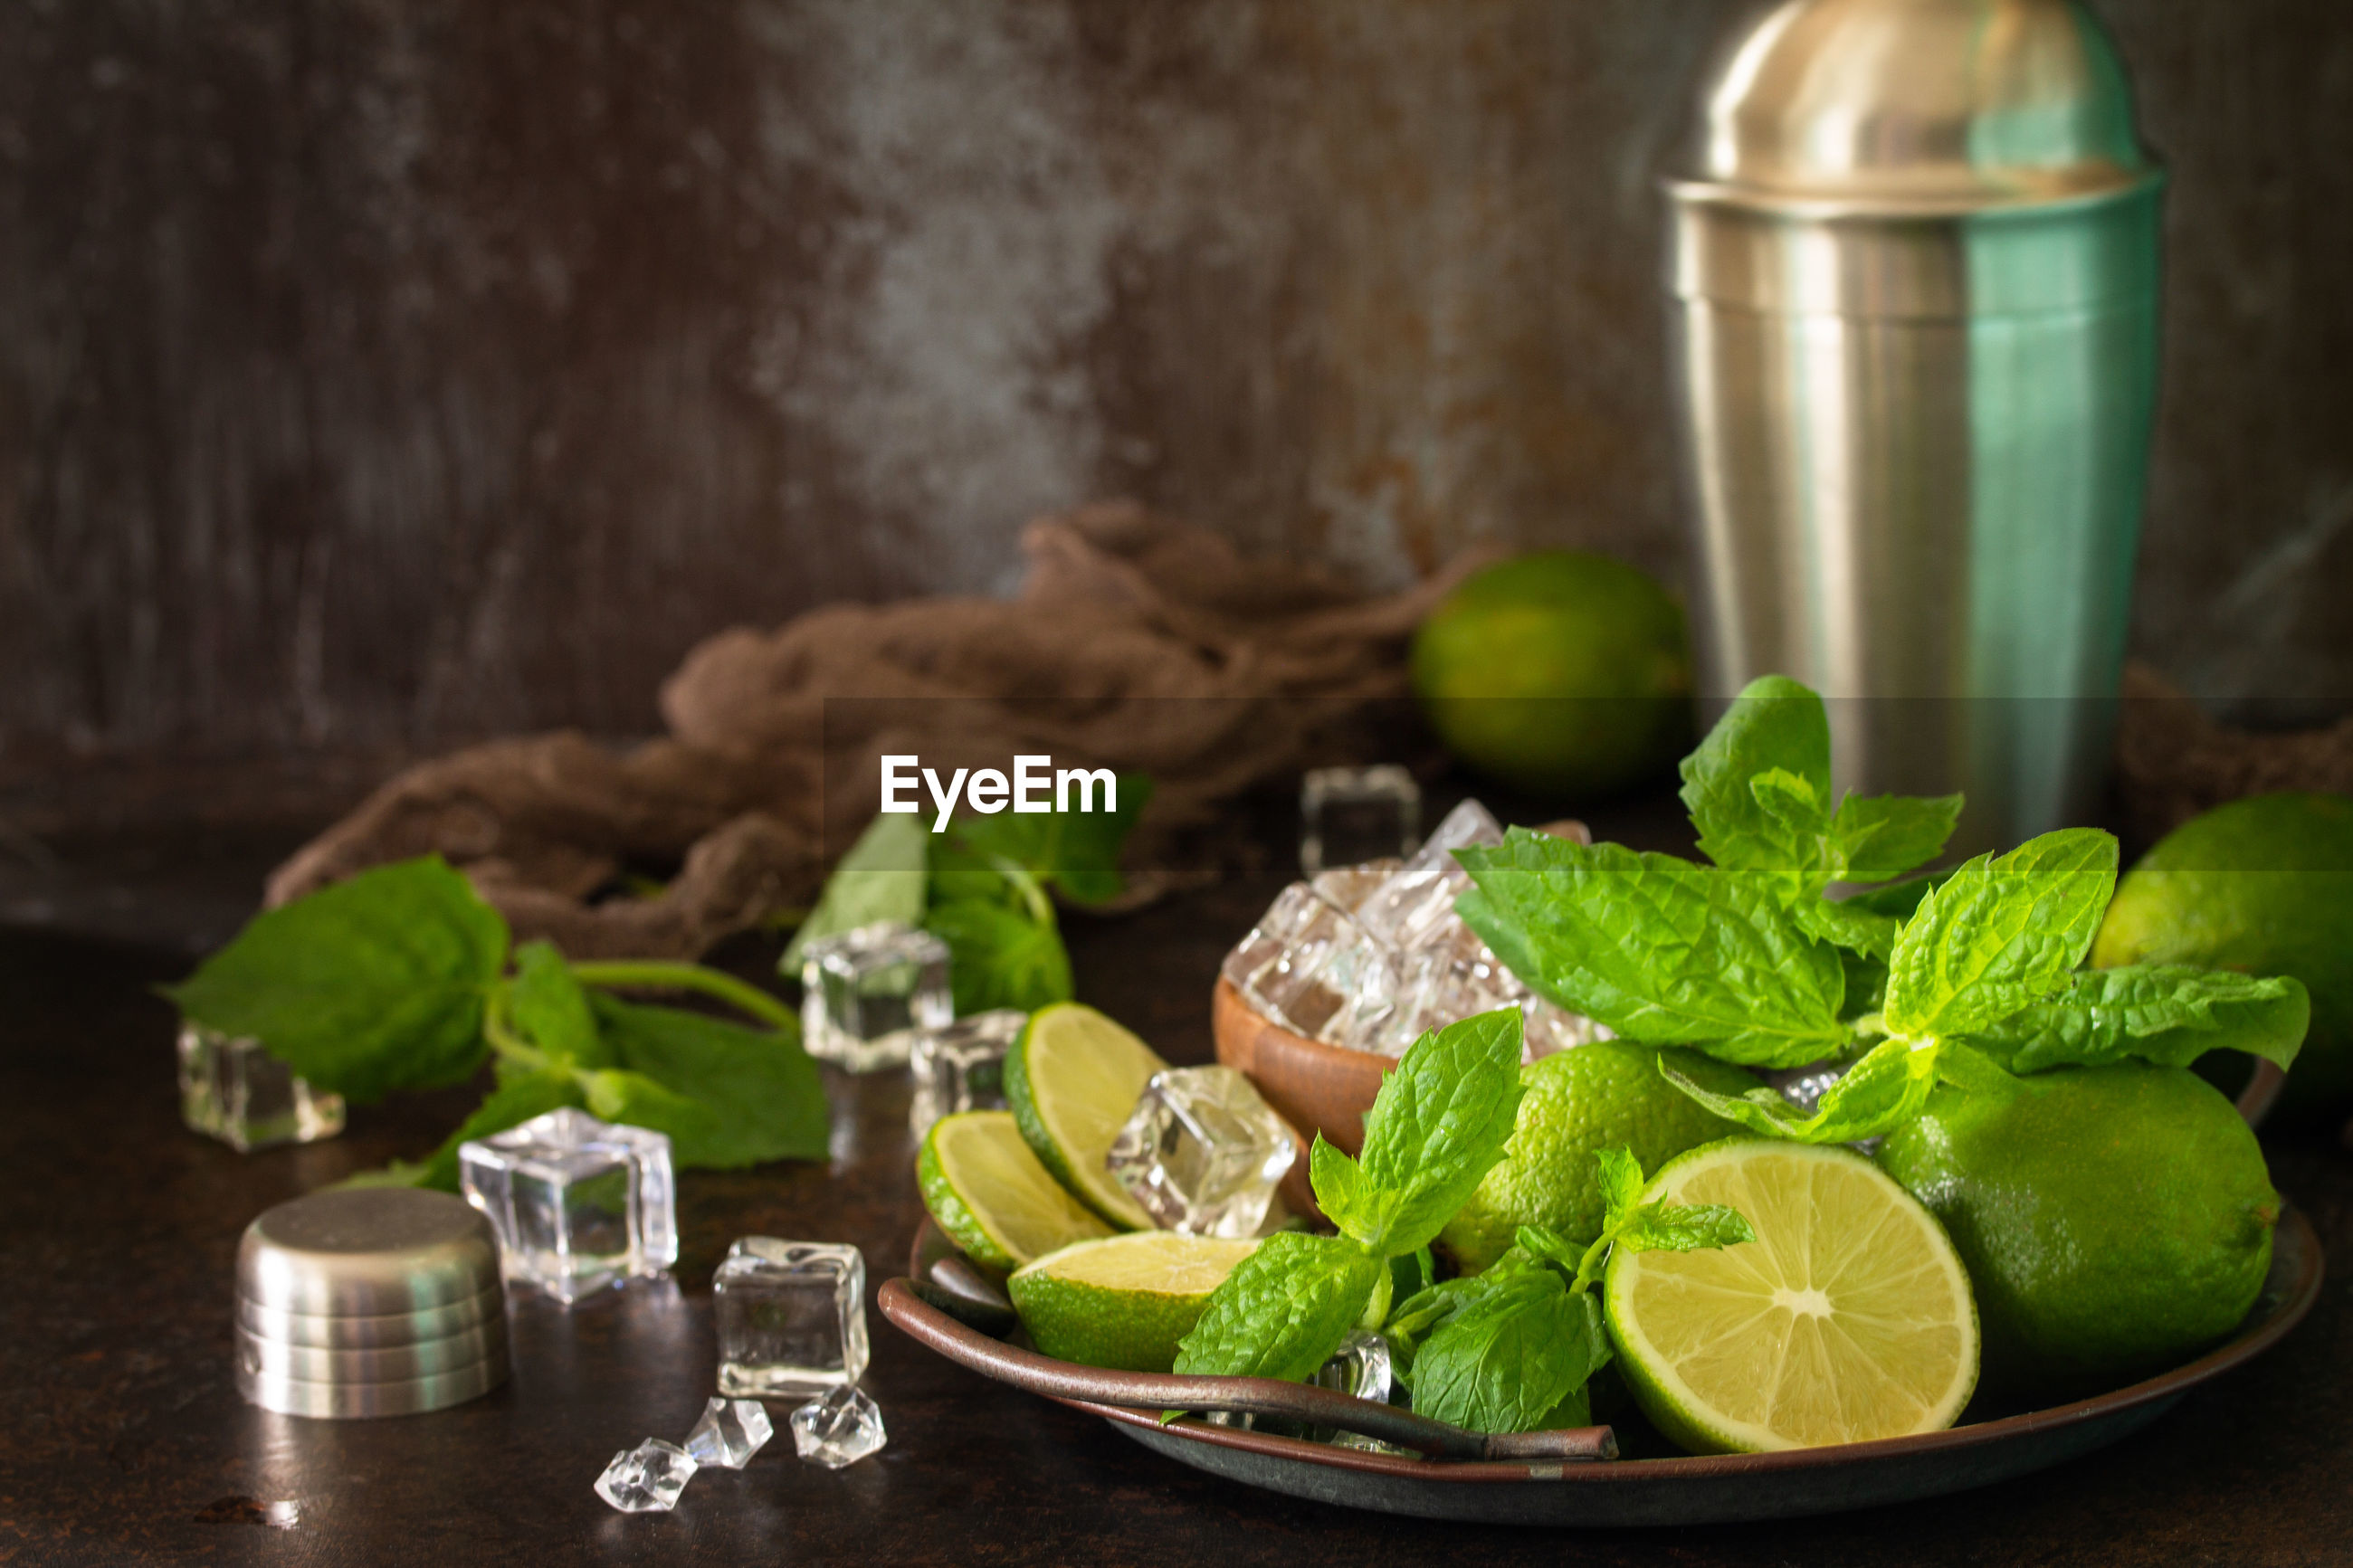 FRESH GREEN FRUITS WITH VEGETABLES AND LEAVES